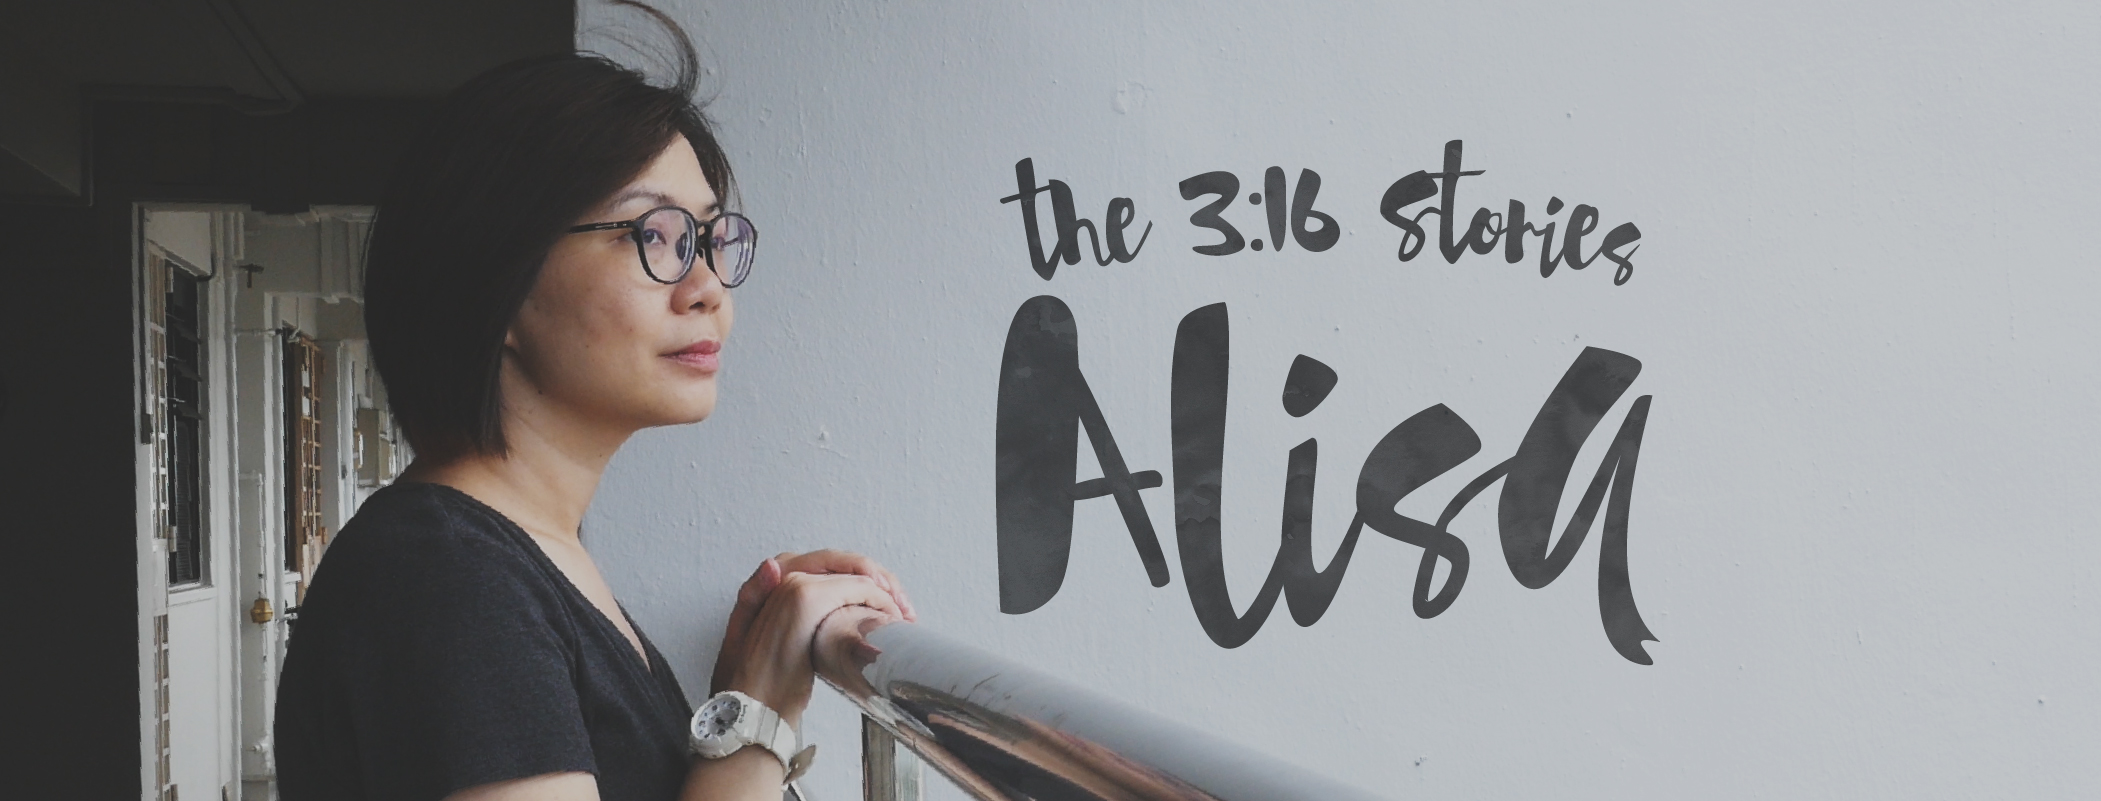 The 3:16 Stories - Alisa